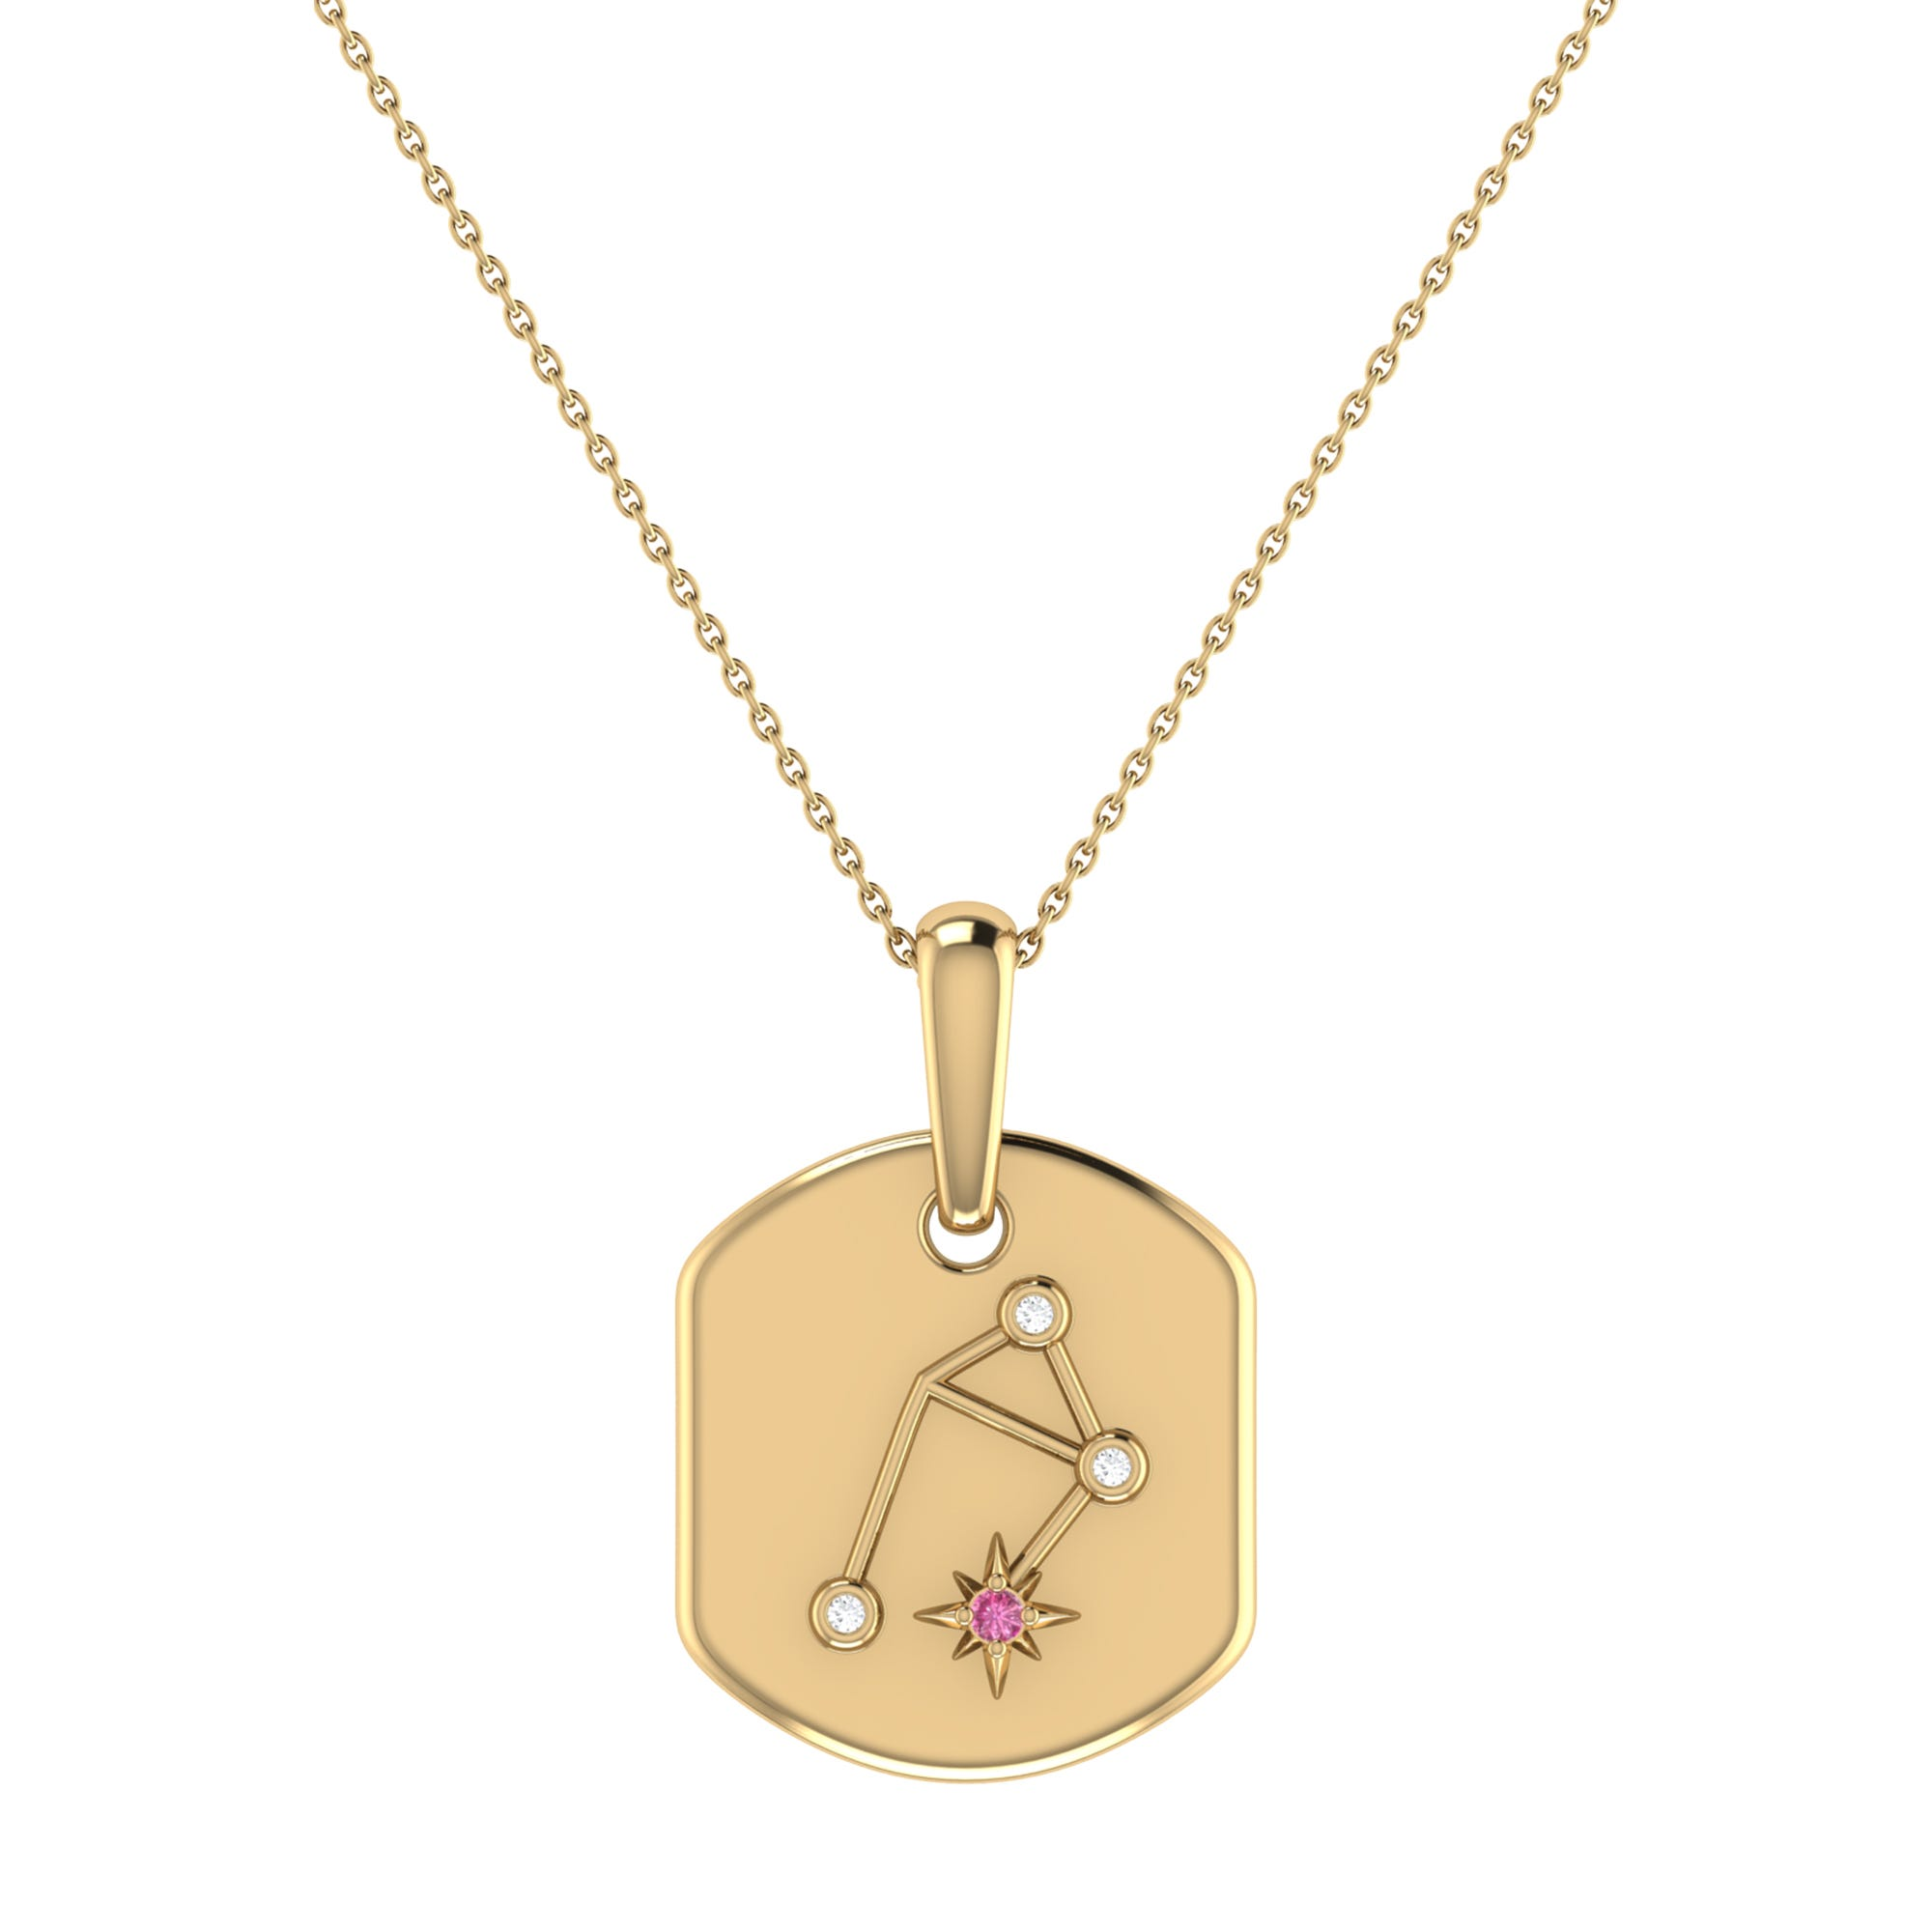 Diamond and Pink Tourmaline Libra ConstellationTag Necklace in 14k Yellow Gold Plated Sterling Silver